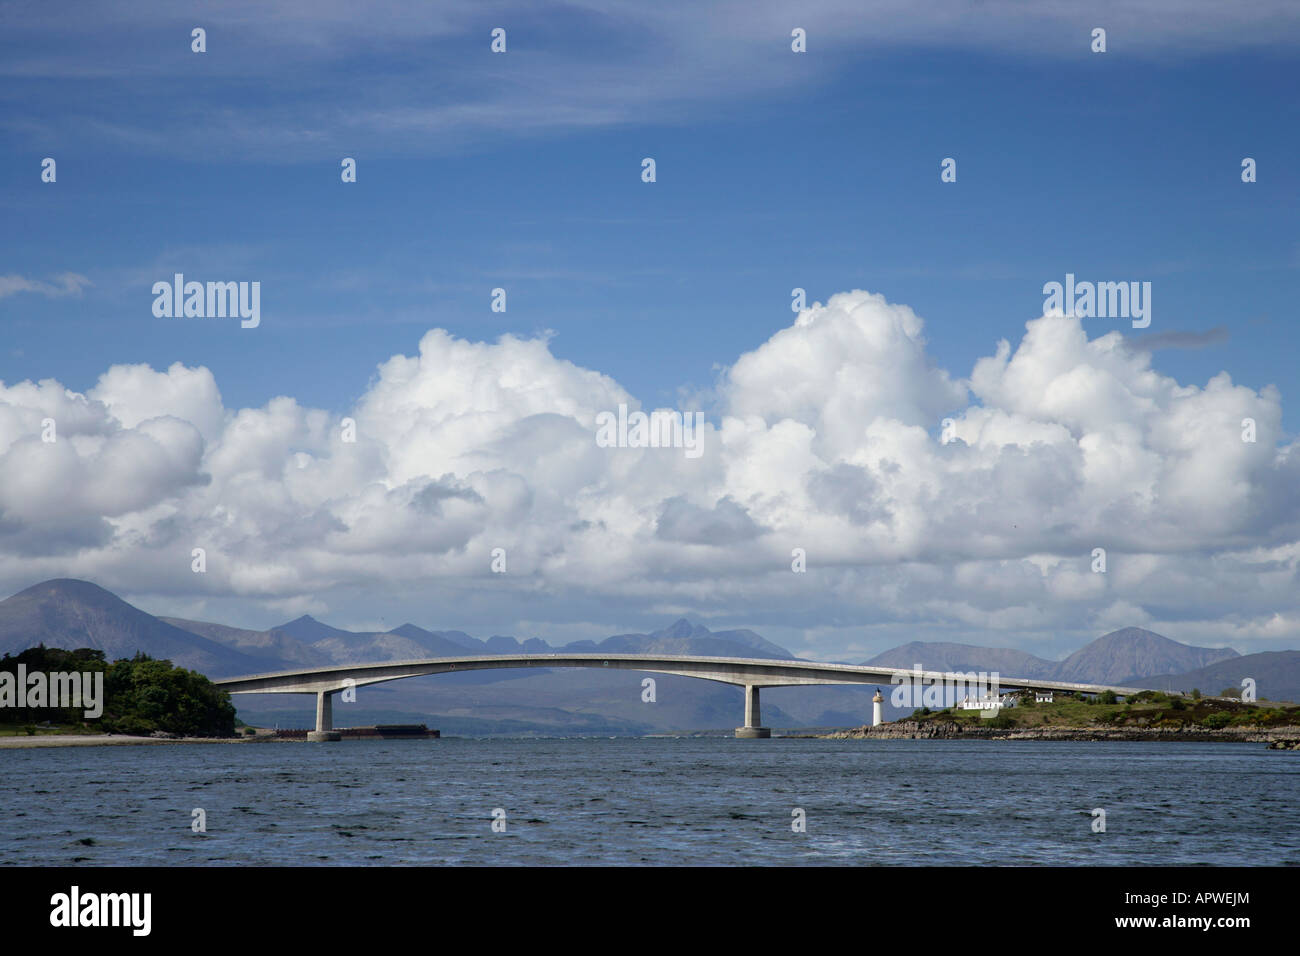 SKYE BRIDGE THE ROAD BRIDGE SPANS LOCH ALSH BETWEEN THE MAINLAND AND THE ISLE OF SKYE - Stock Image